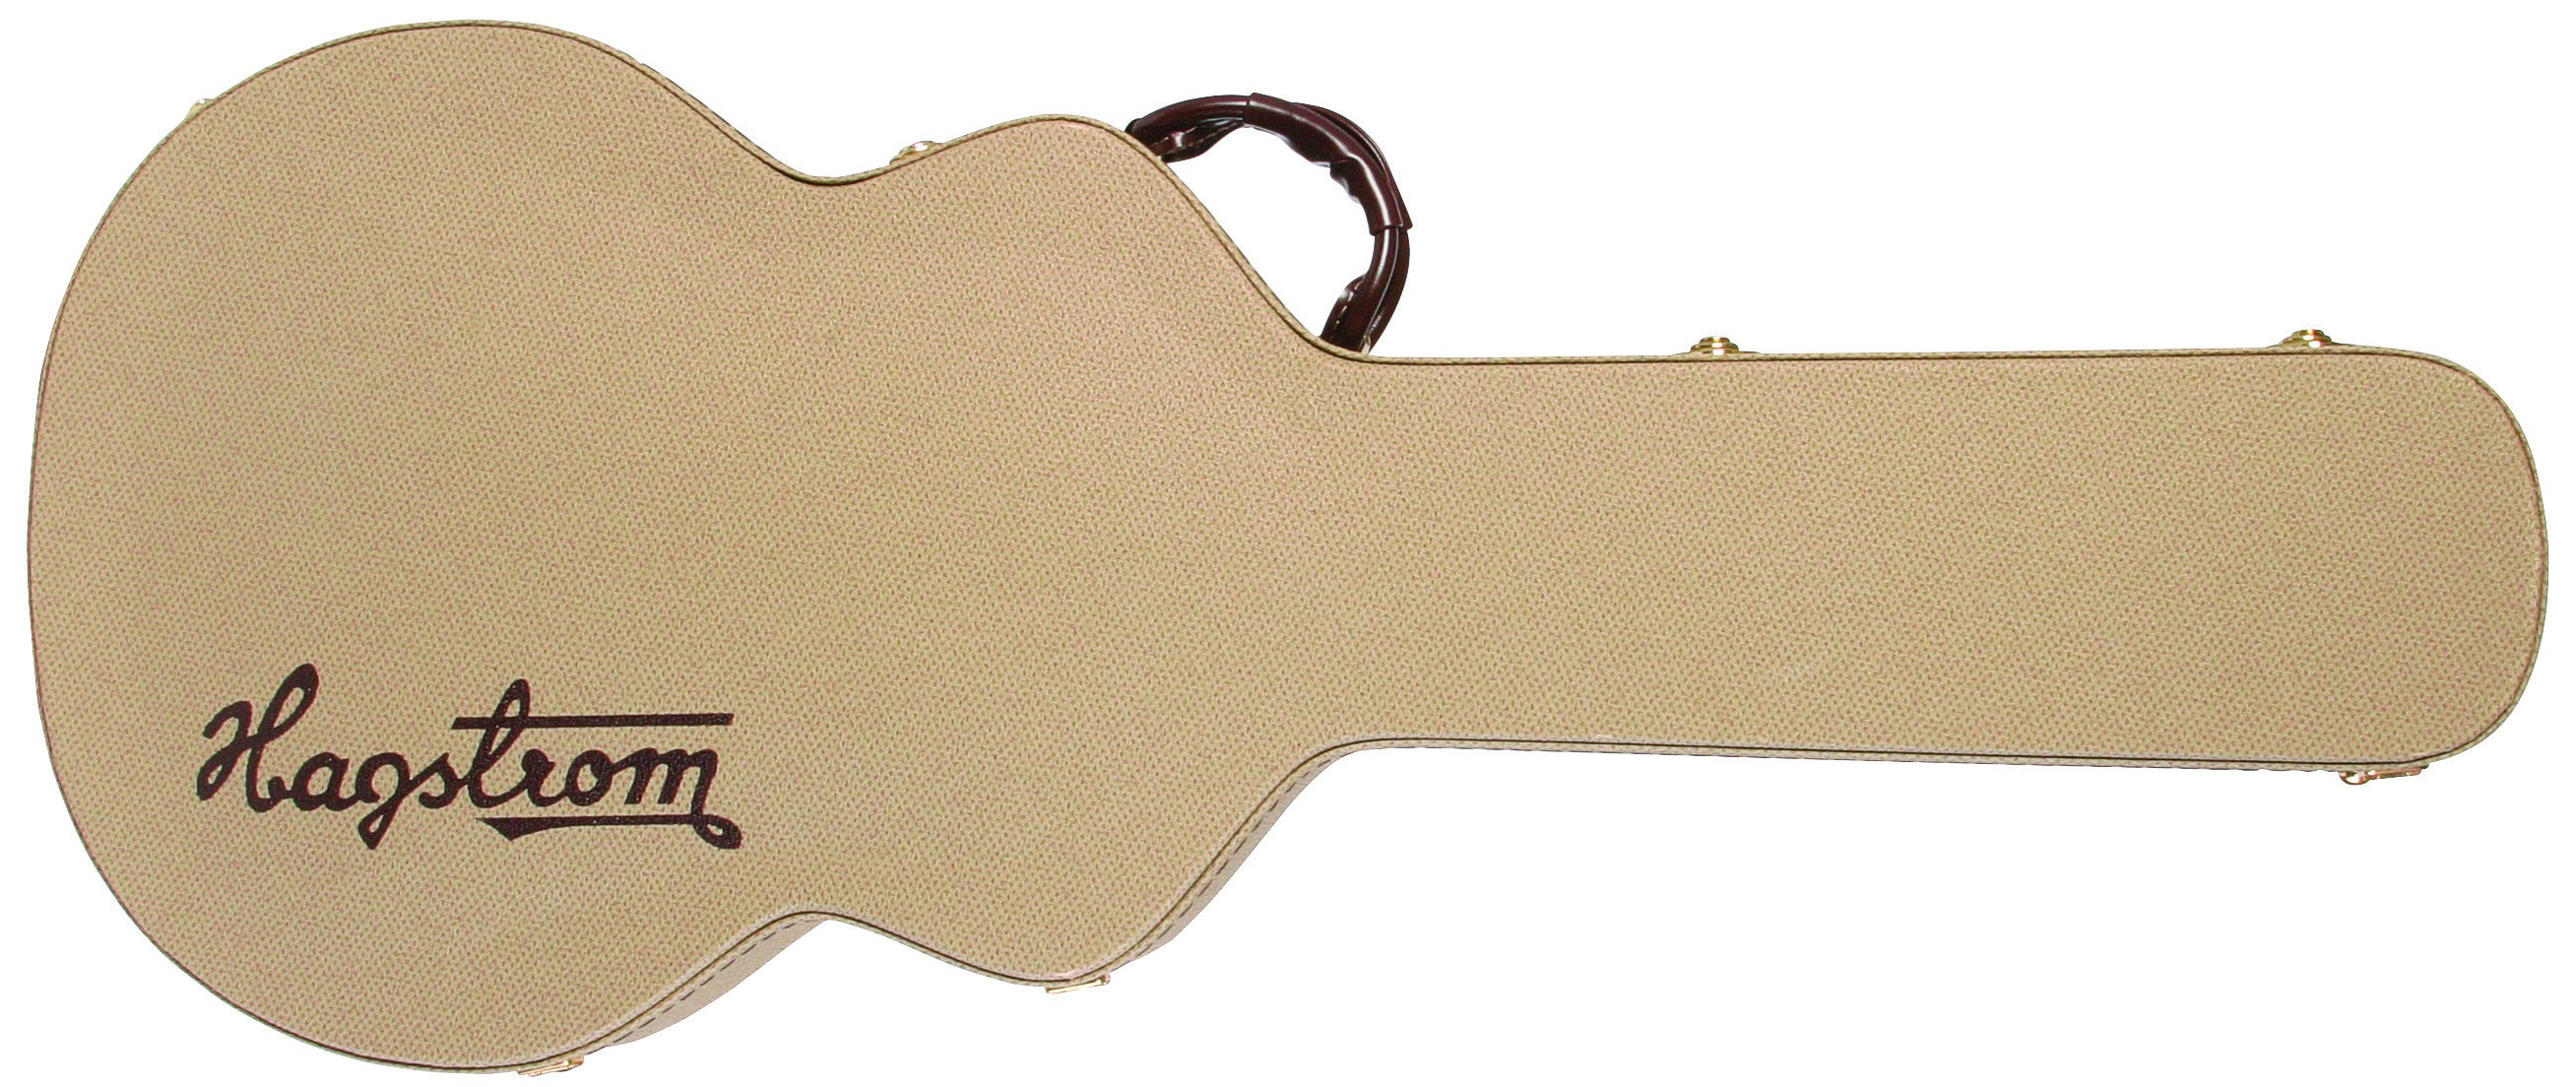 Hagstrom B63 Case for Swede Bass